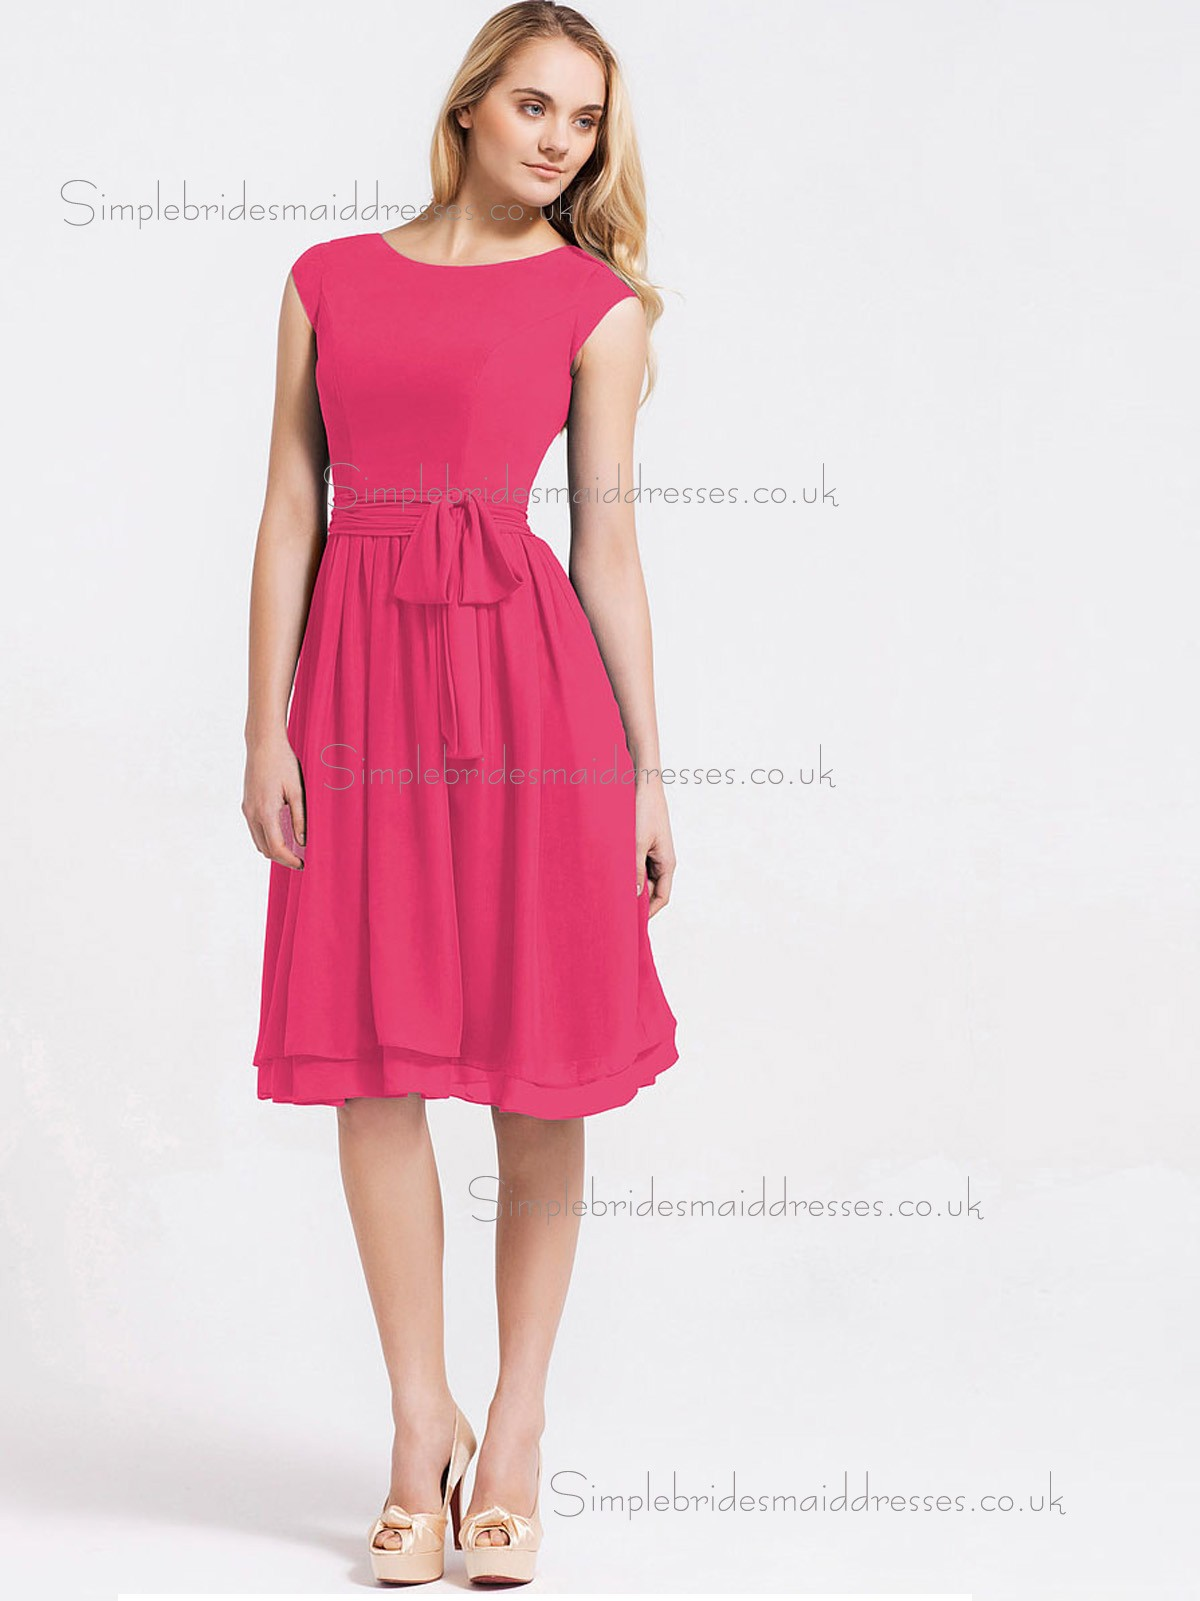 Schön Hot Pink Bridesmaid Dresses Uk Bilder - Brautkleider Ideen ...